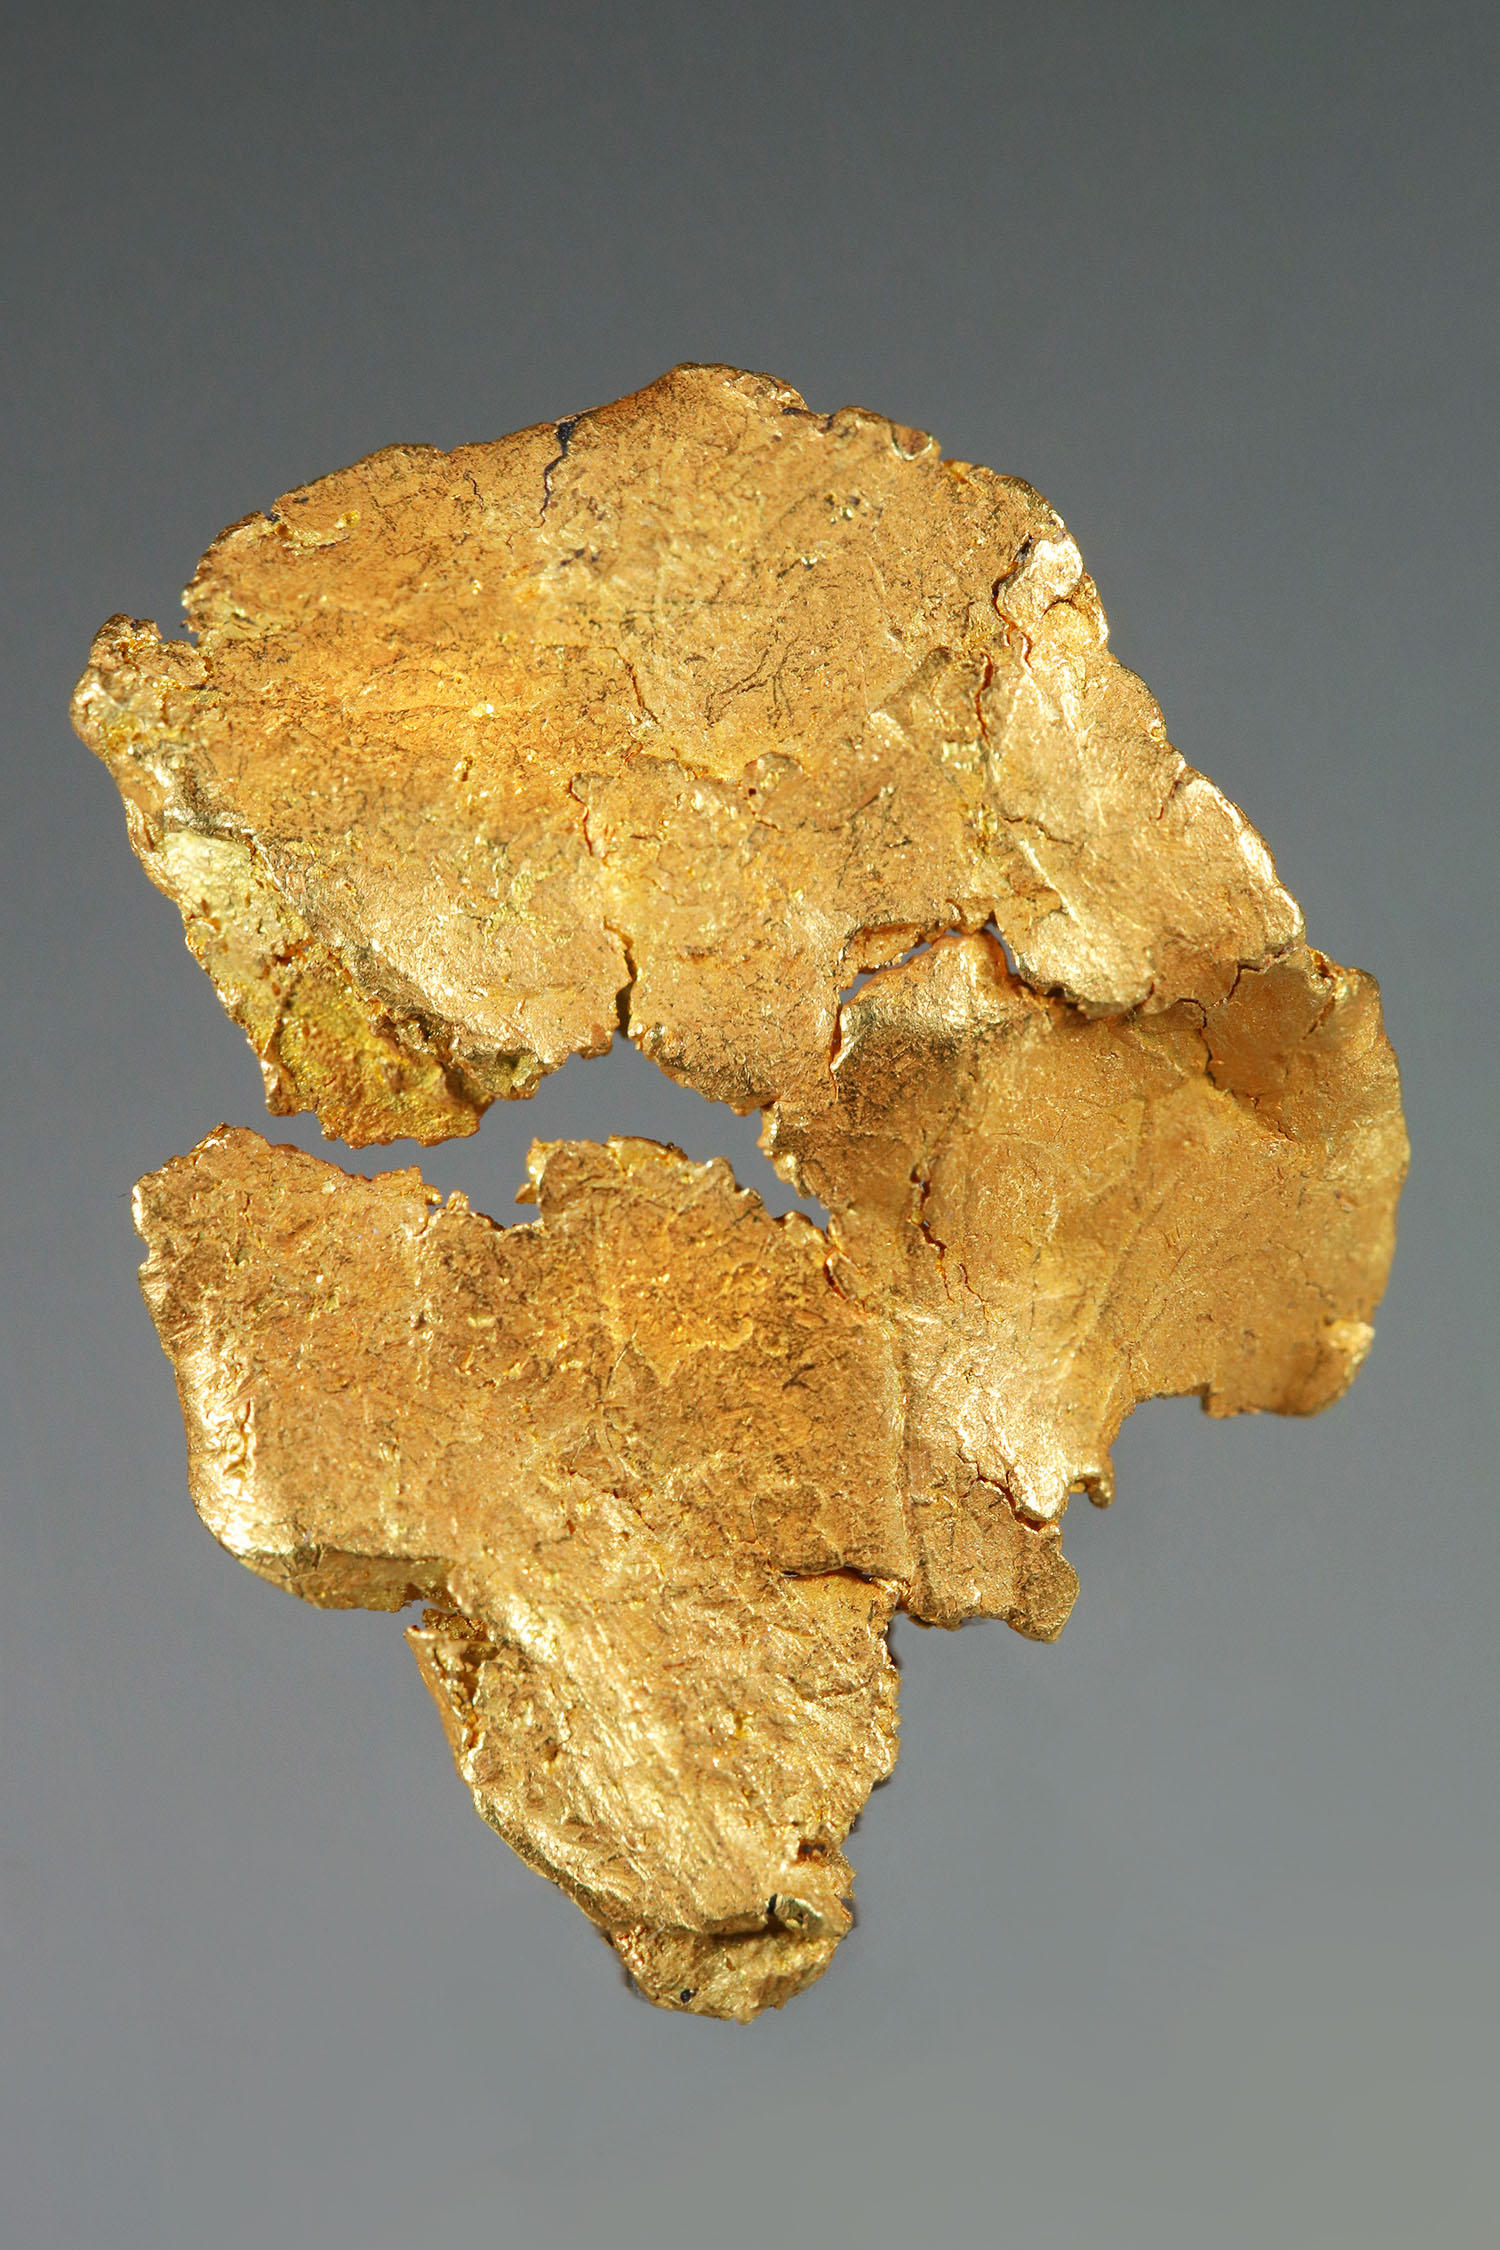 Intricate Leaf Gold Specimen from the Yukon